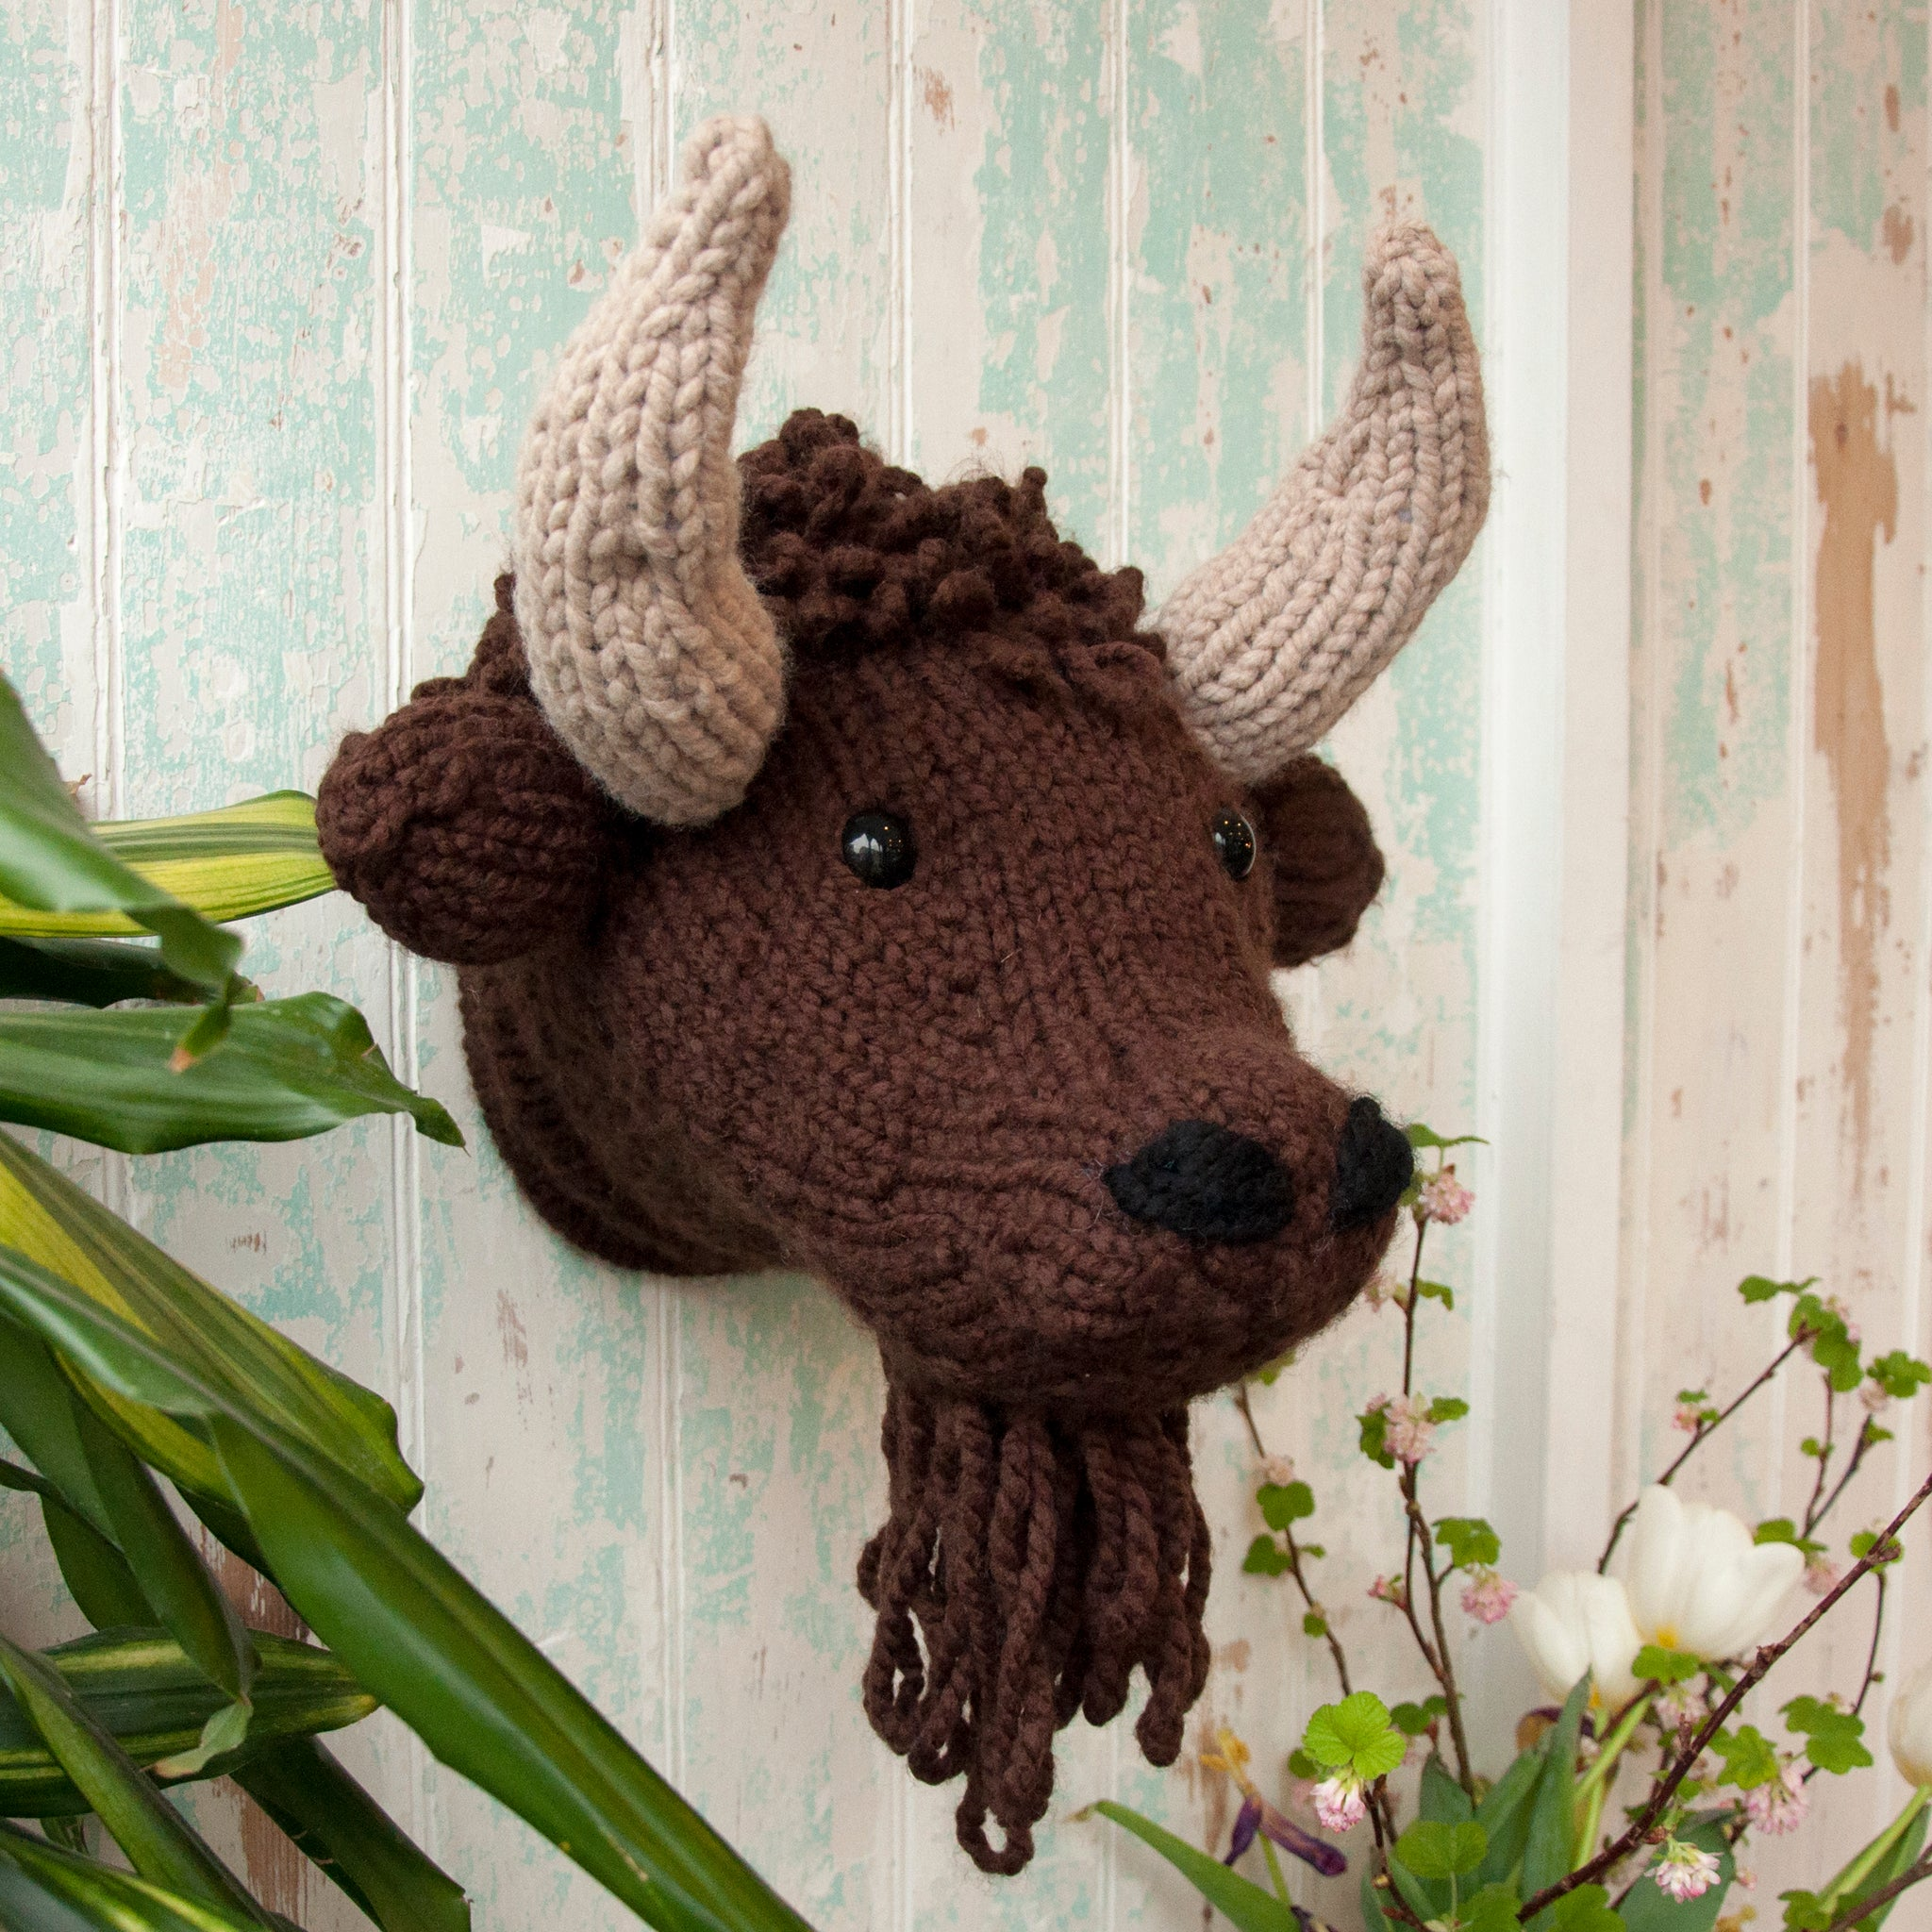 Giant Bison Head Knitting Kit (4571923644548)